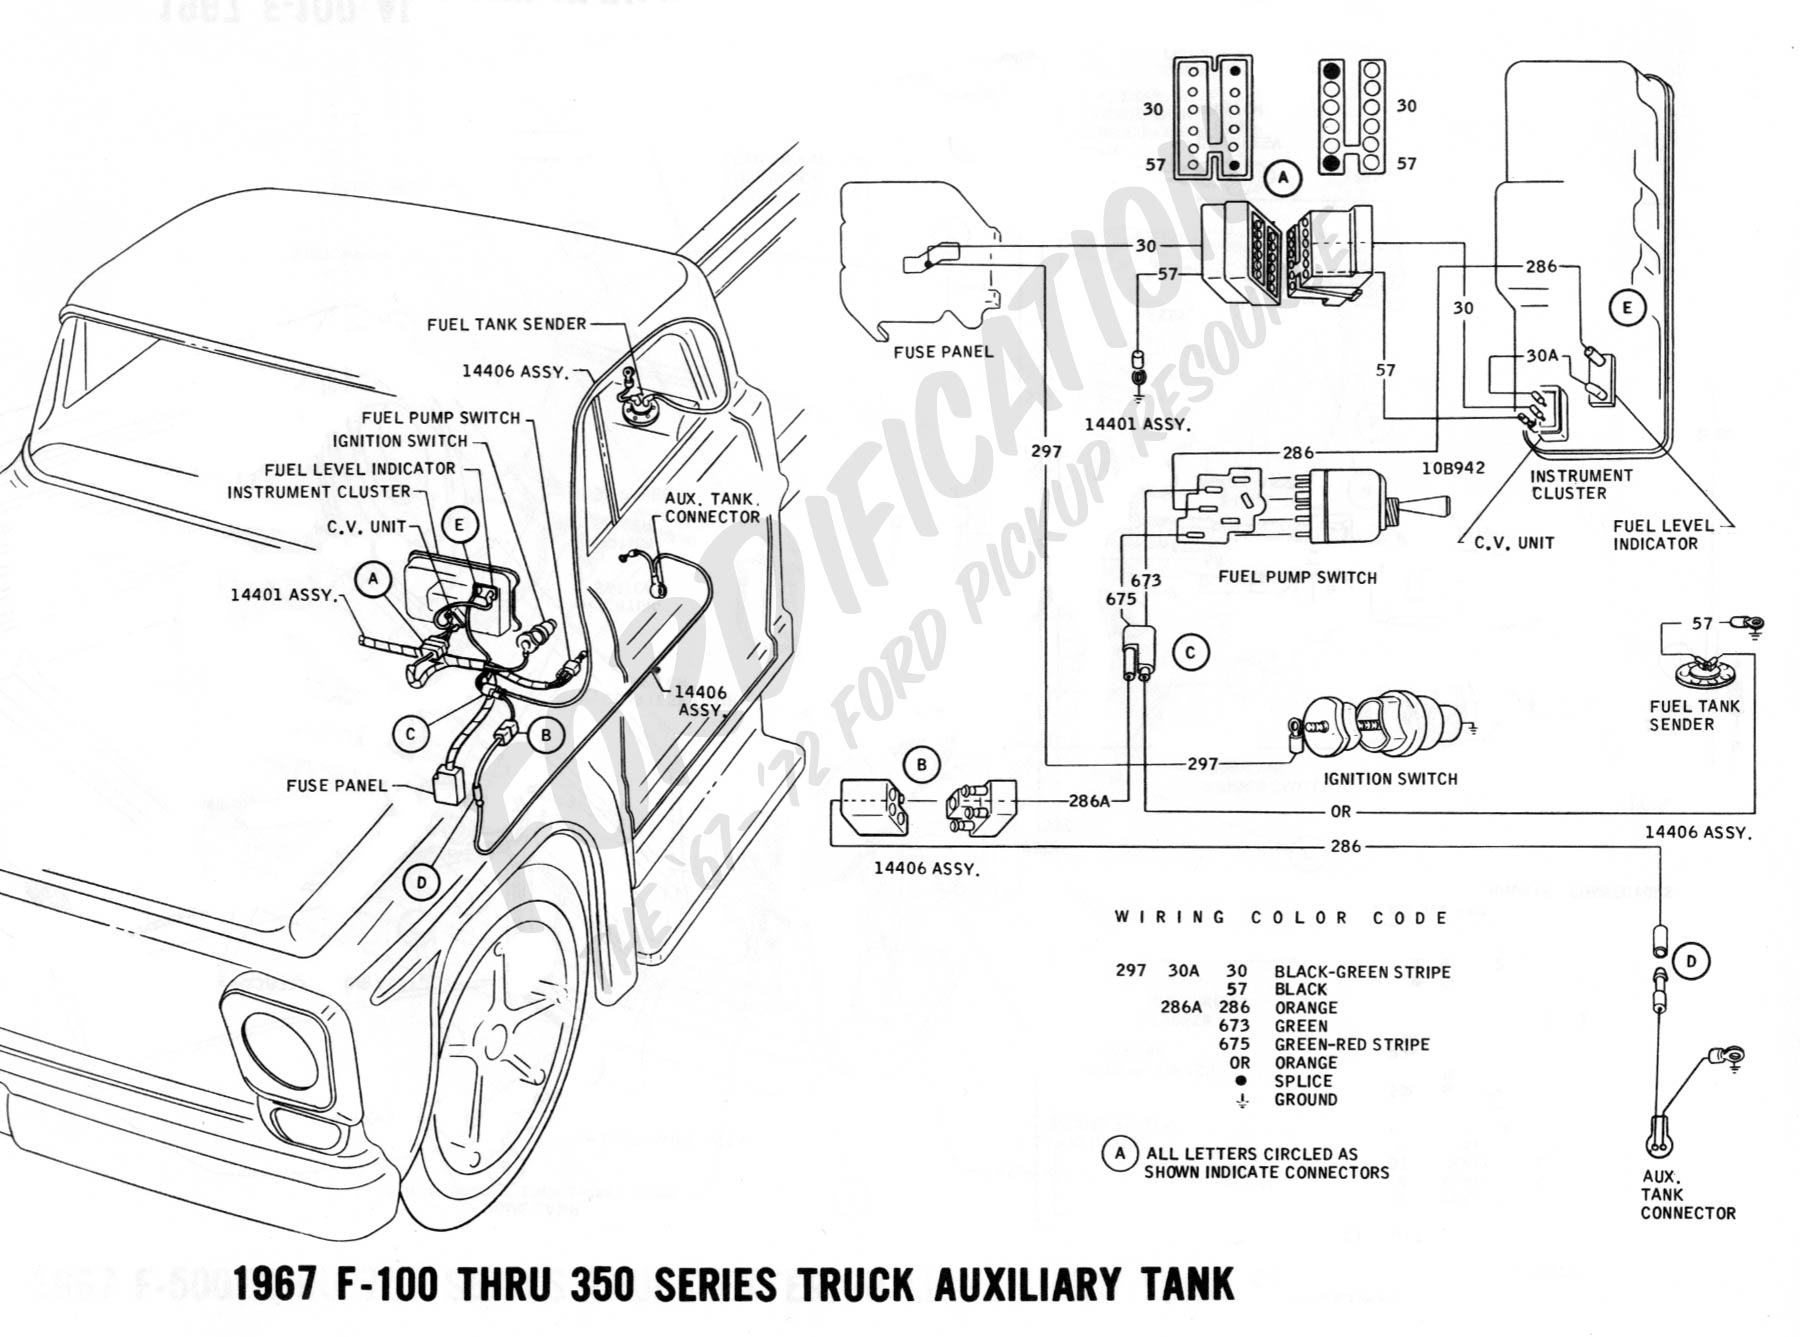 1966 Ford F100 Engine Wiring Diagram Free Picture Library 1977 Chevrolet Pickup Get Image About 72 F250 1969